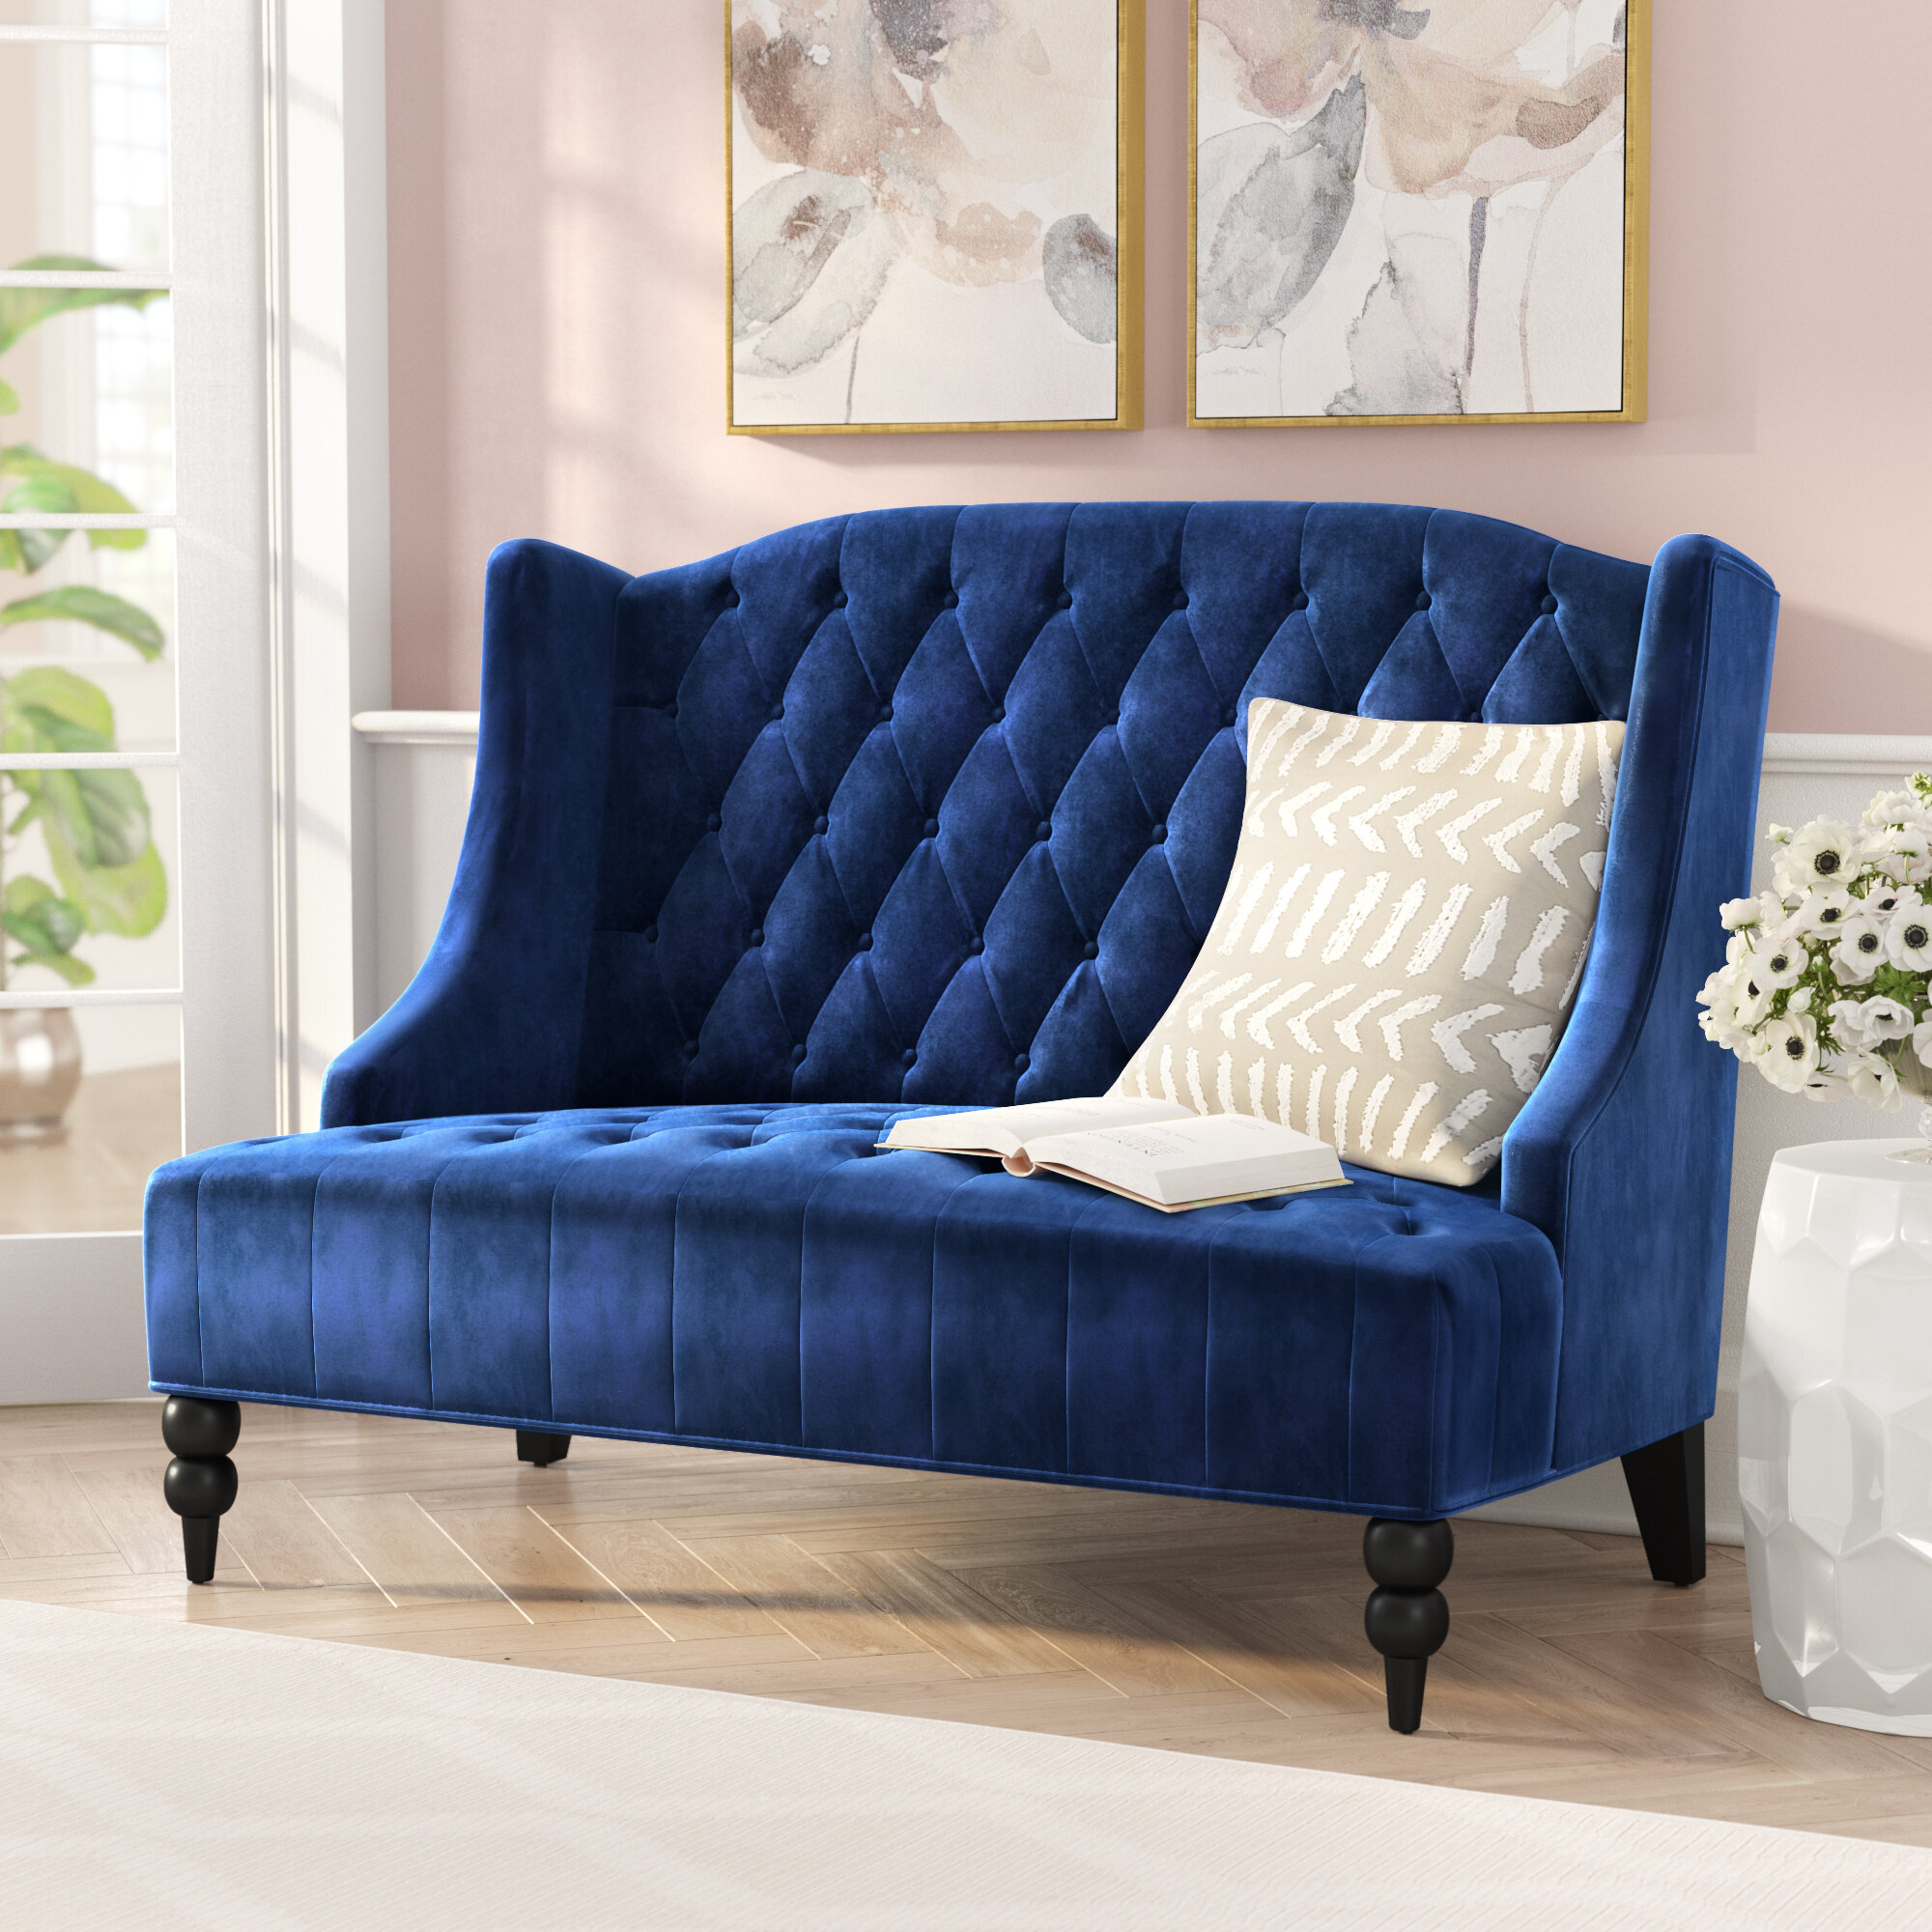 teal ava loveseat velvet at room and chairs sofas sofa loveseats green designs oversized bedroom living images tufted